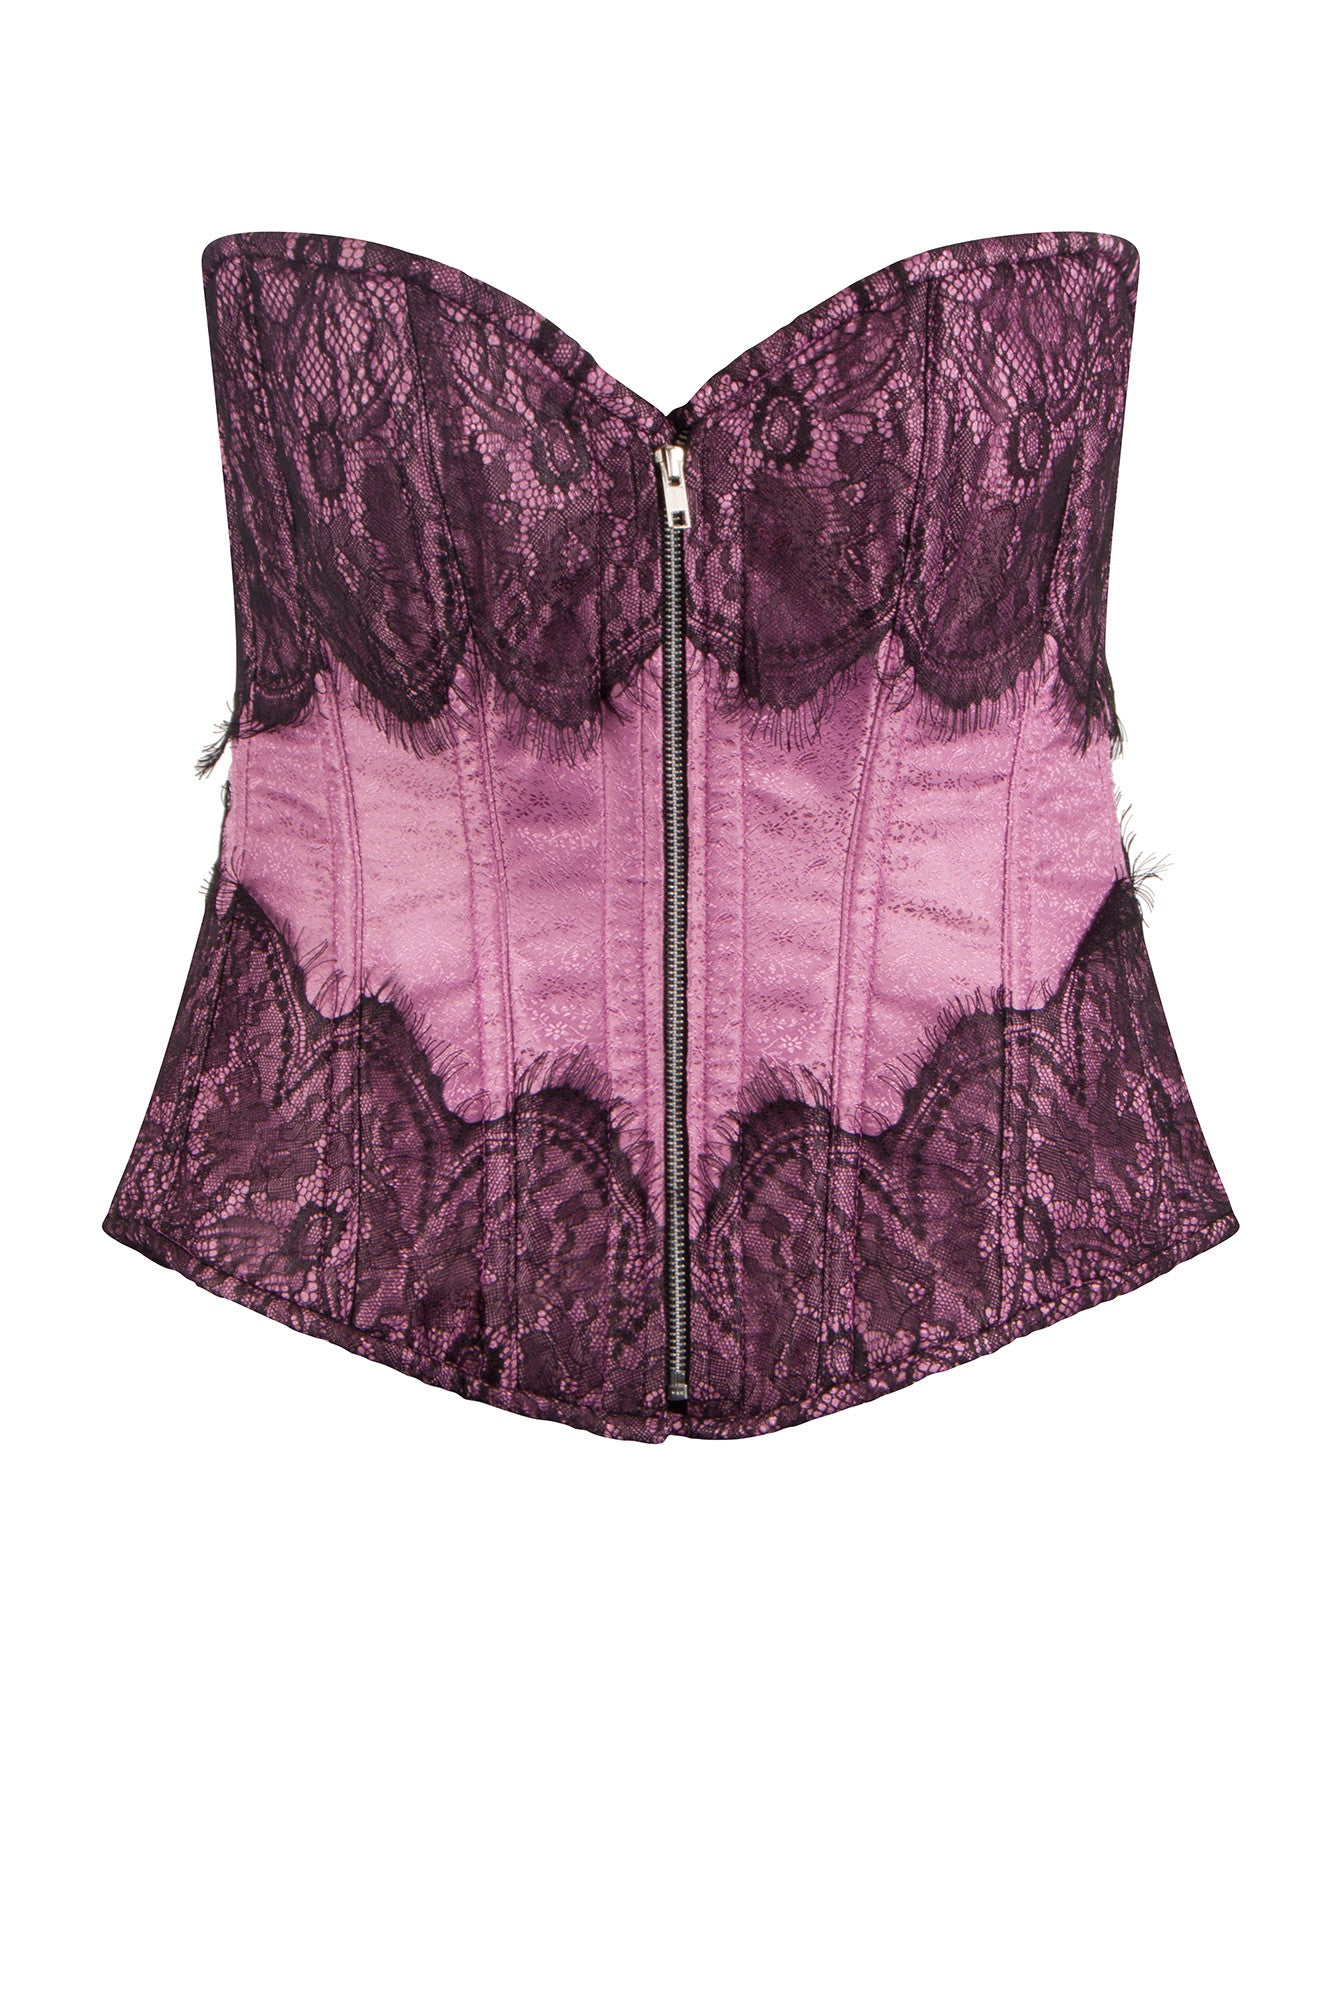 Wine Red Plus Size Corset Basque Bustier Overbust